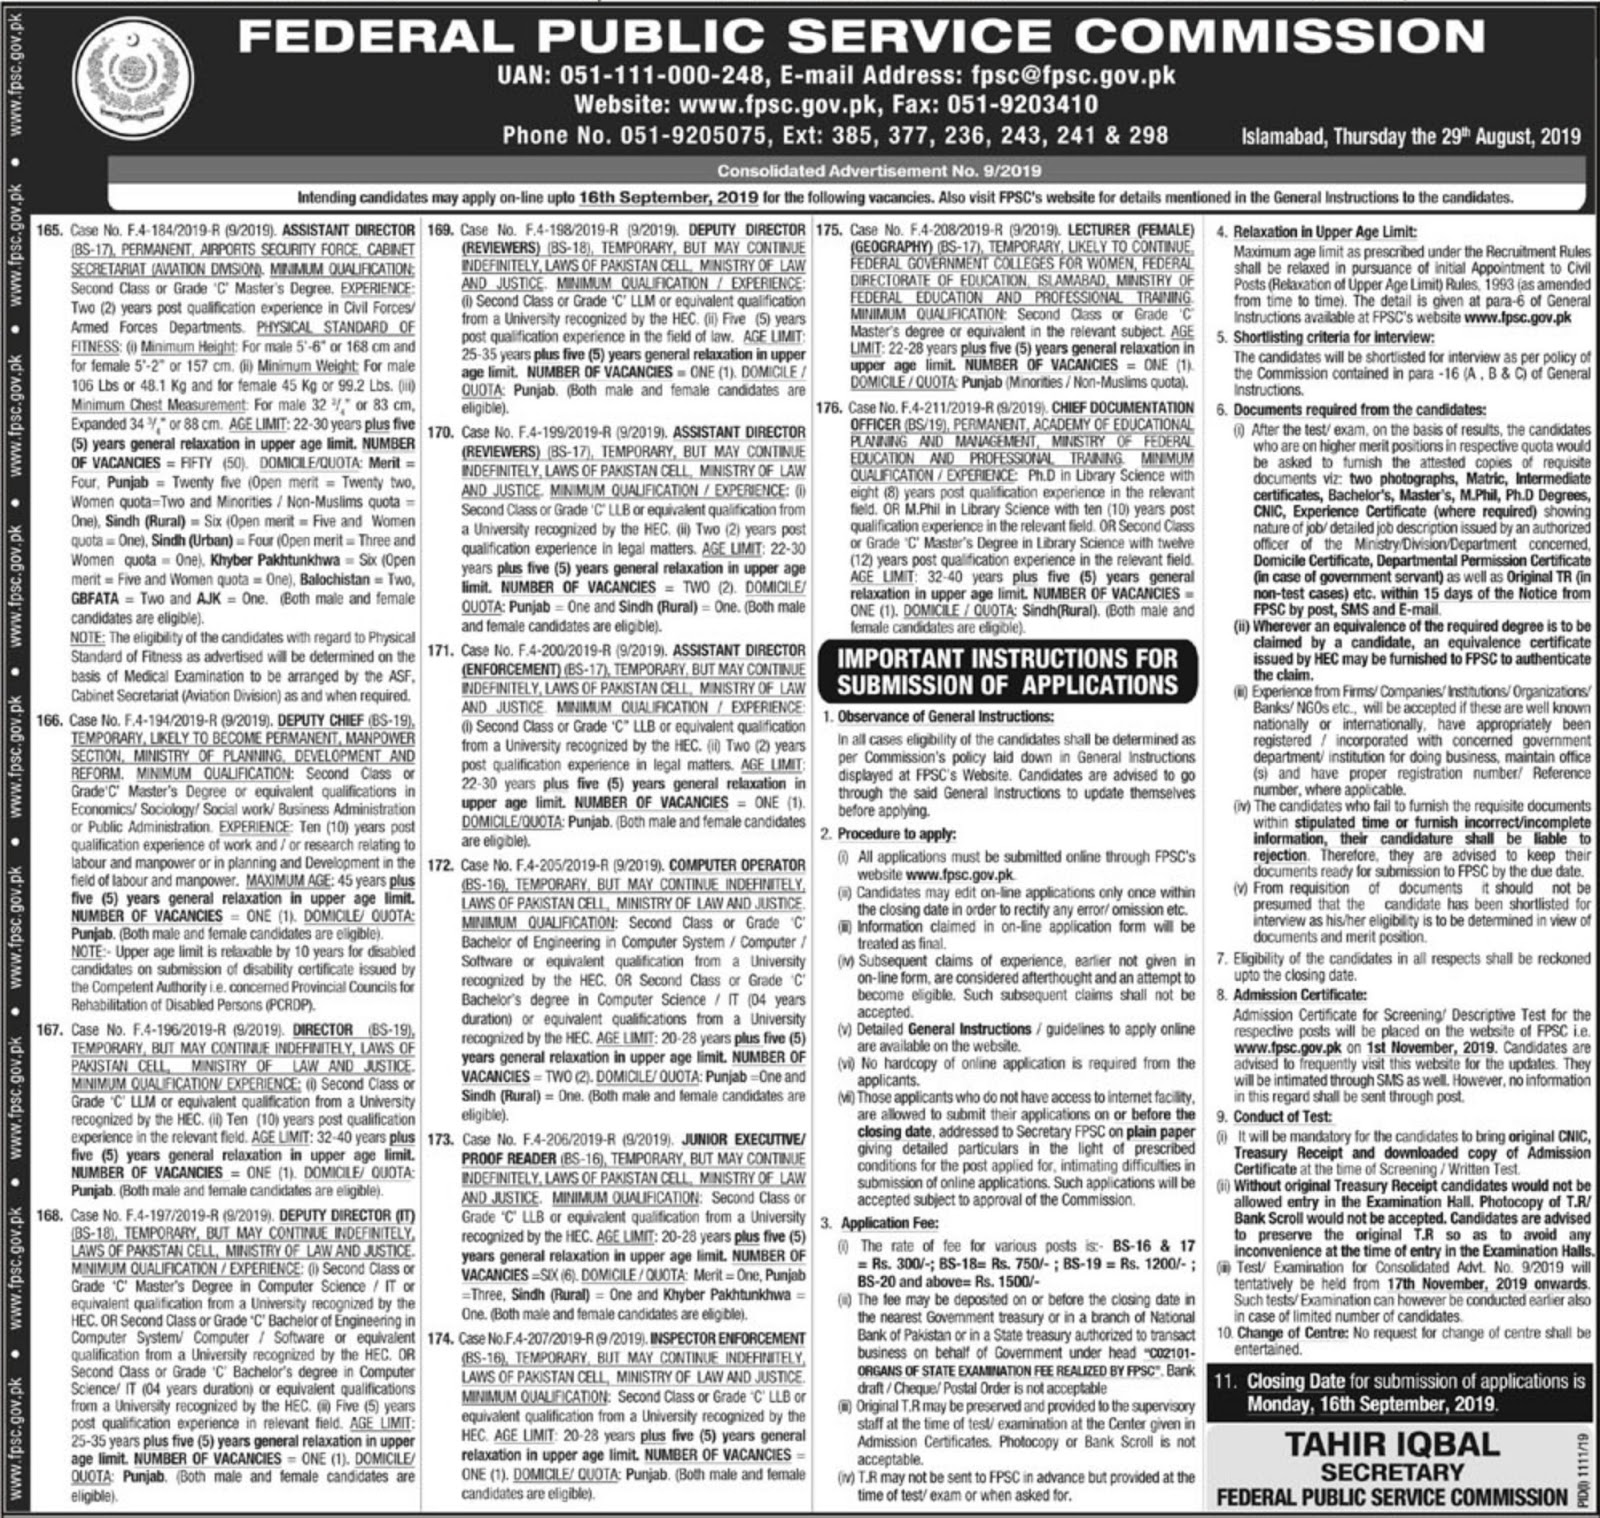 FPSC Jobs 2019 Apply Online Federal Public Service Commission Consolidated advertisement 9/2019